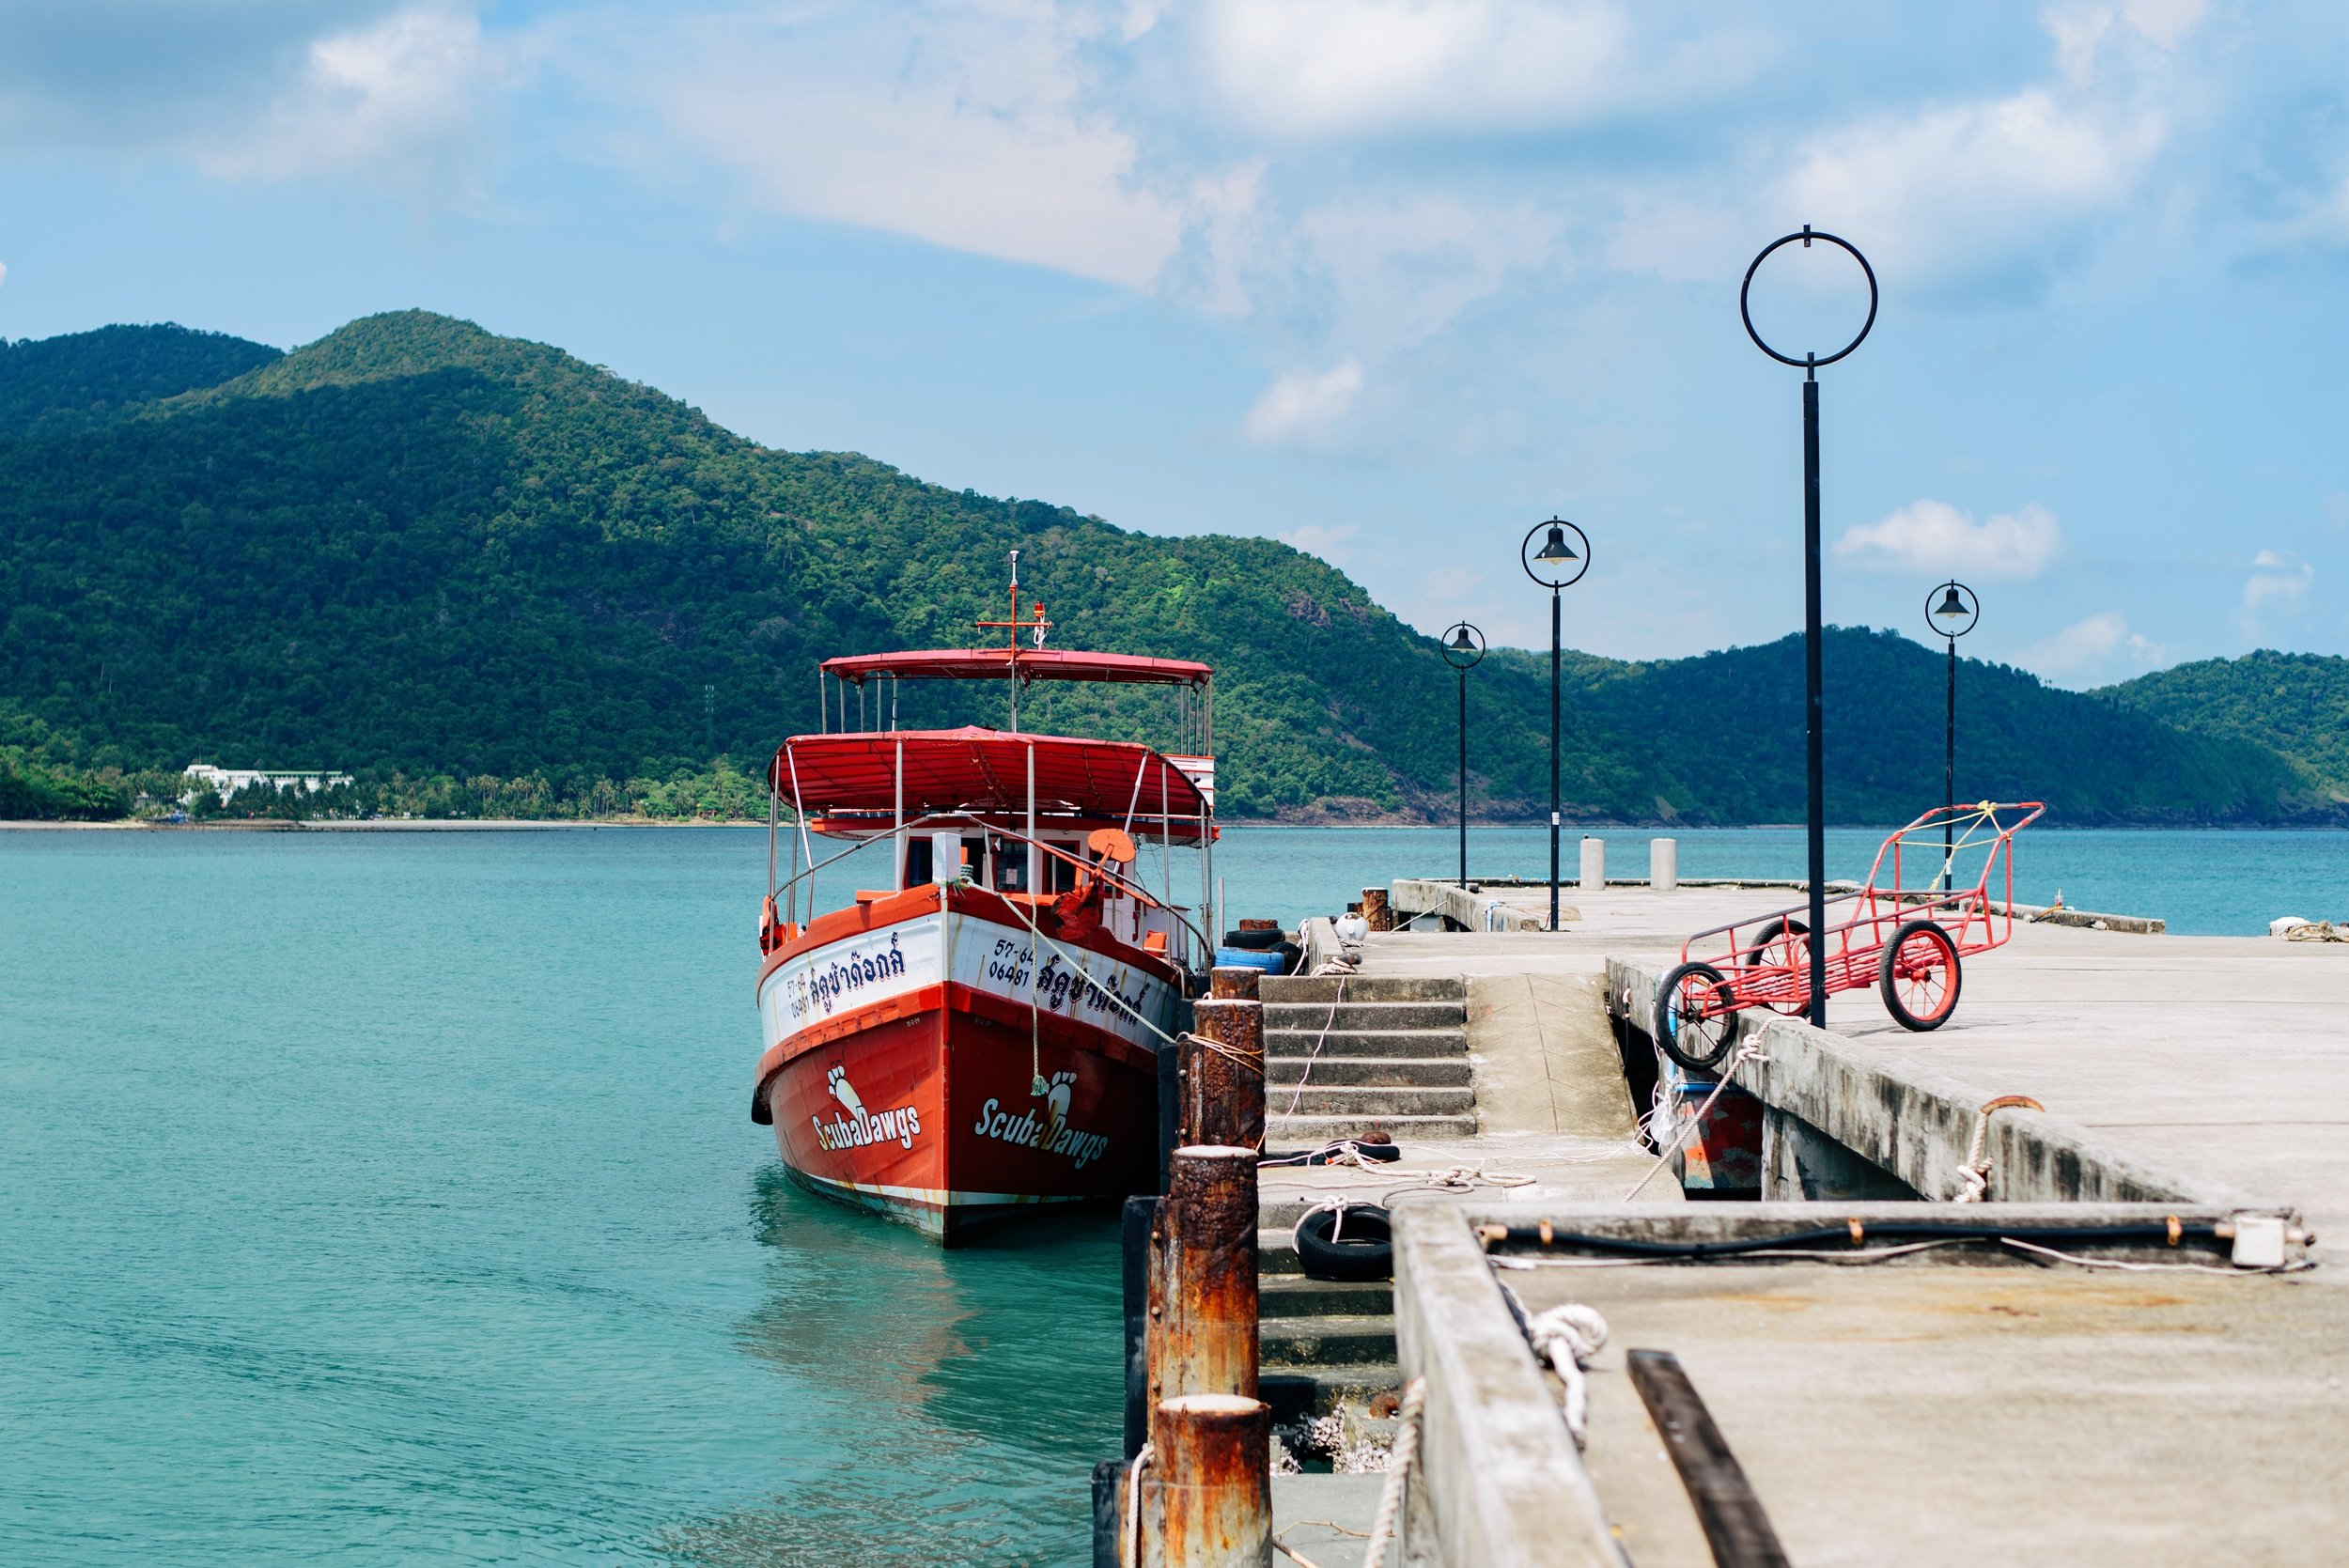 Koh Rong - A tropical group of islands off the coast of Sihanoukville, with white-sand beaches and clear-blue waters that remain pristine and undeveloped.